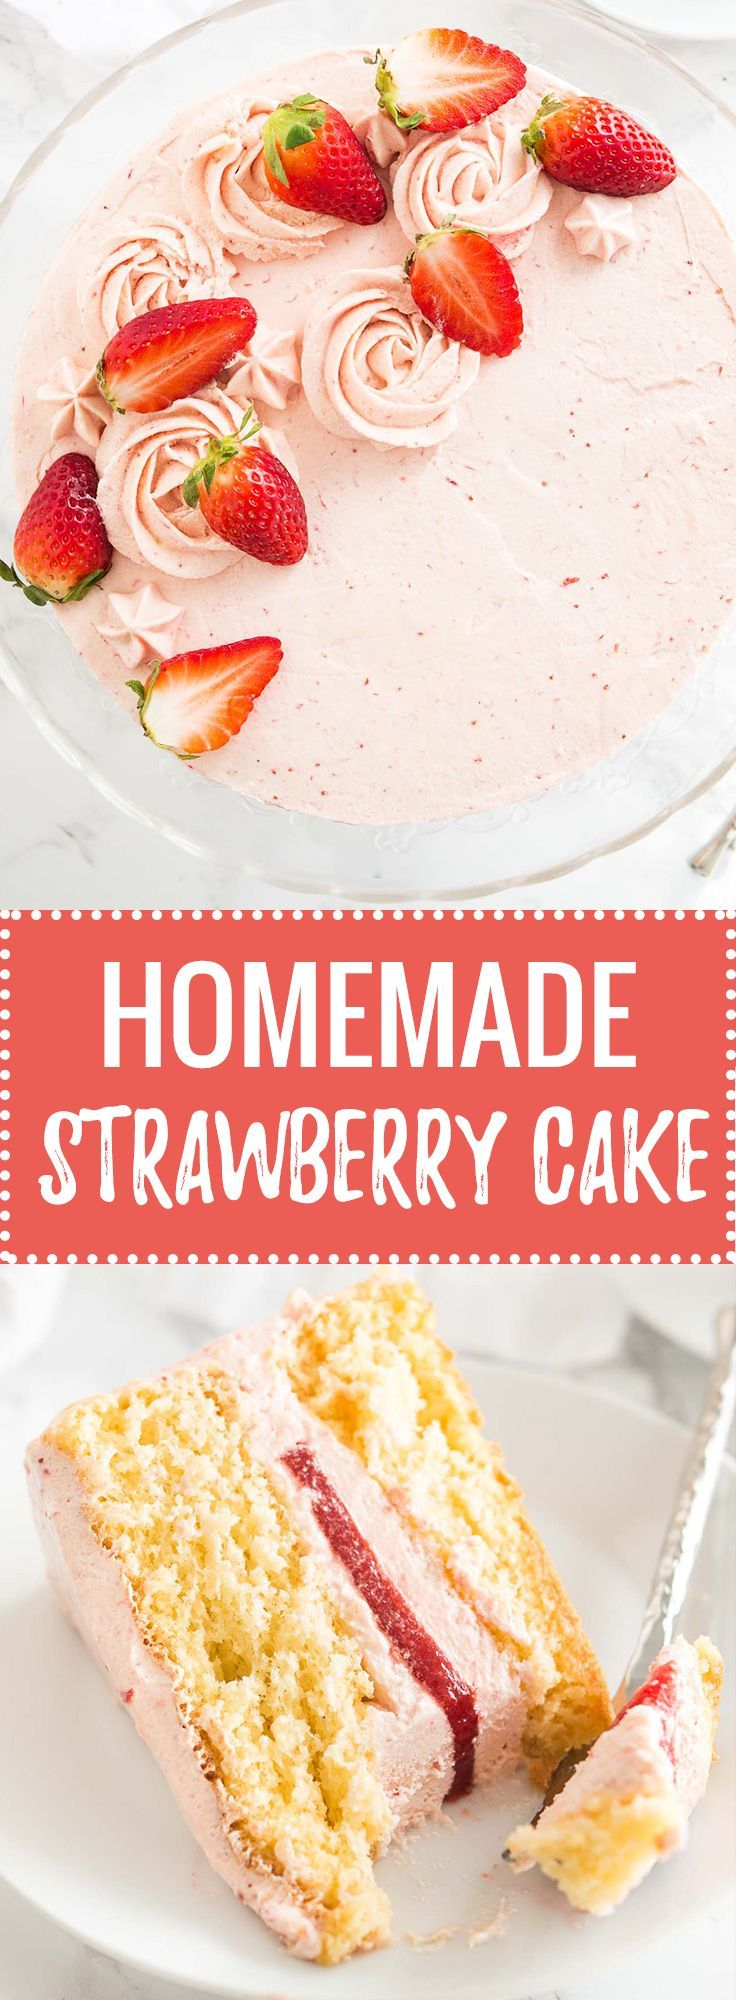 This homemade Strawberry Cake Recipe is bursting with fresh strawberry flavor and made completely from scratch! Layers of soft and fluffy vanilla cake filled with a strawberry buttercream and a layer of fresh strawberry filling. A perfect layer cake for s